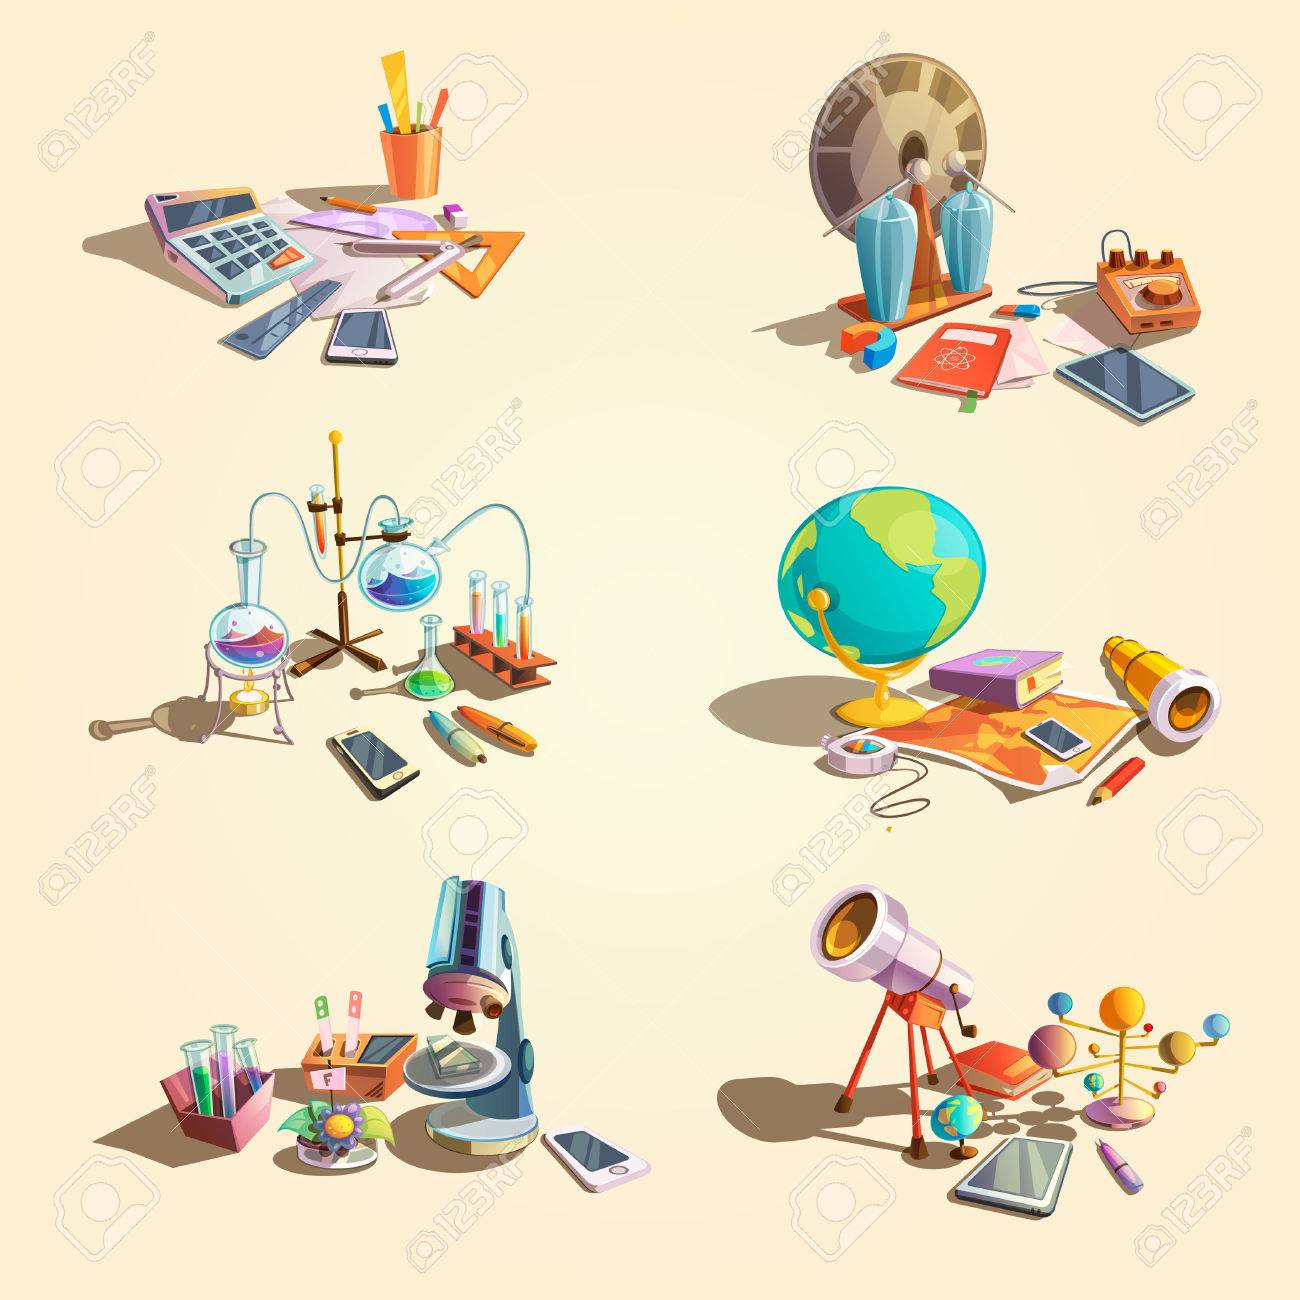 Science retro concept set with cartoon education objects isolated vector illustration - 52696002